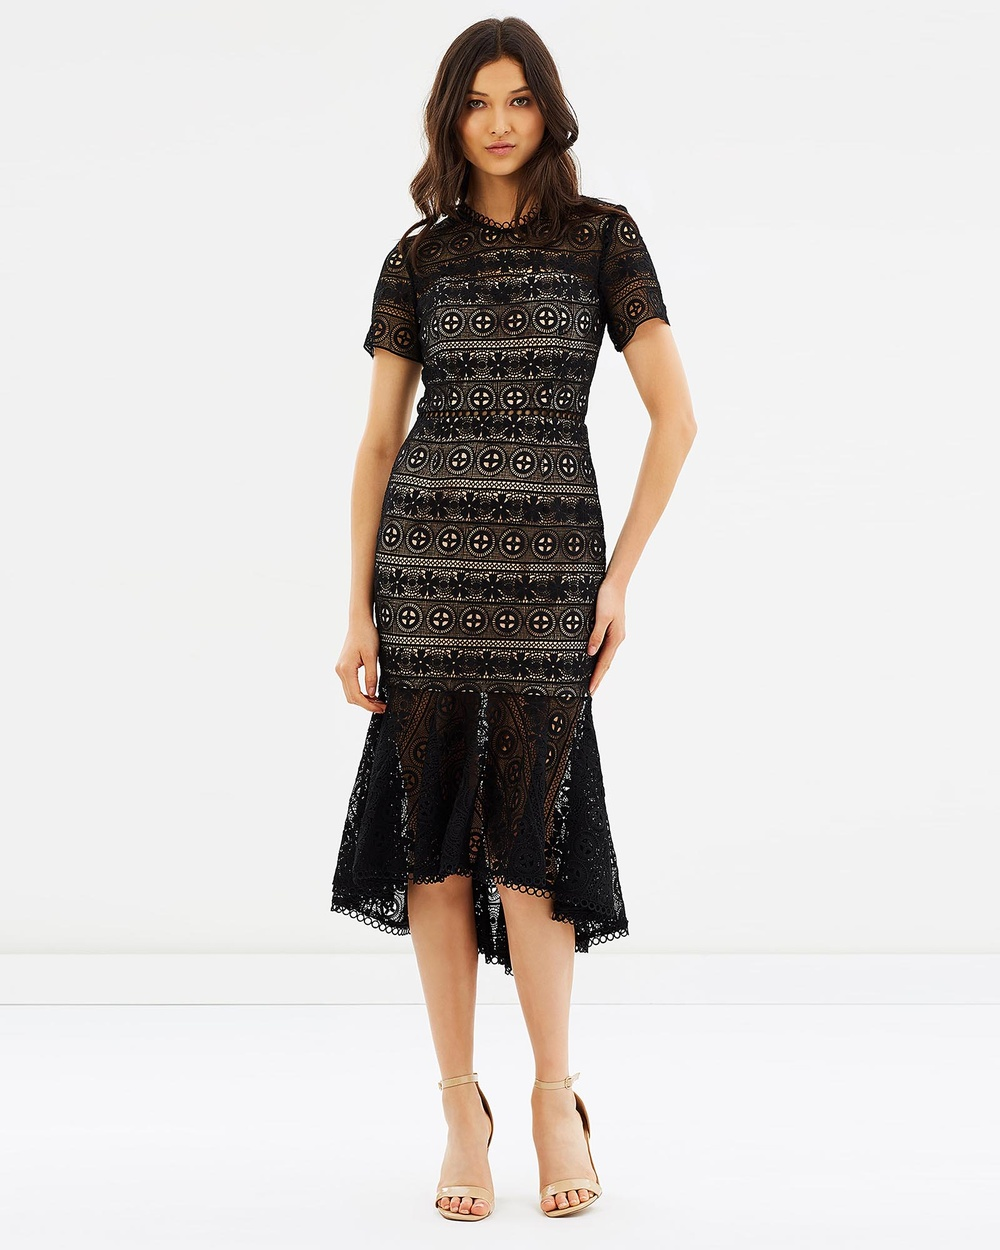 Love Honor Arabella Lace Dress Dresses Black & Nude Arabella Lace Dress